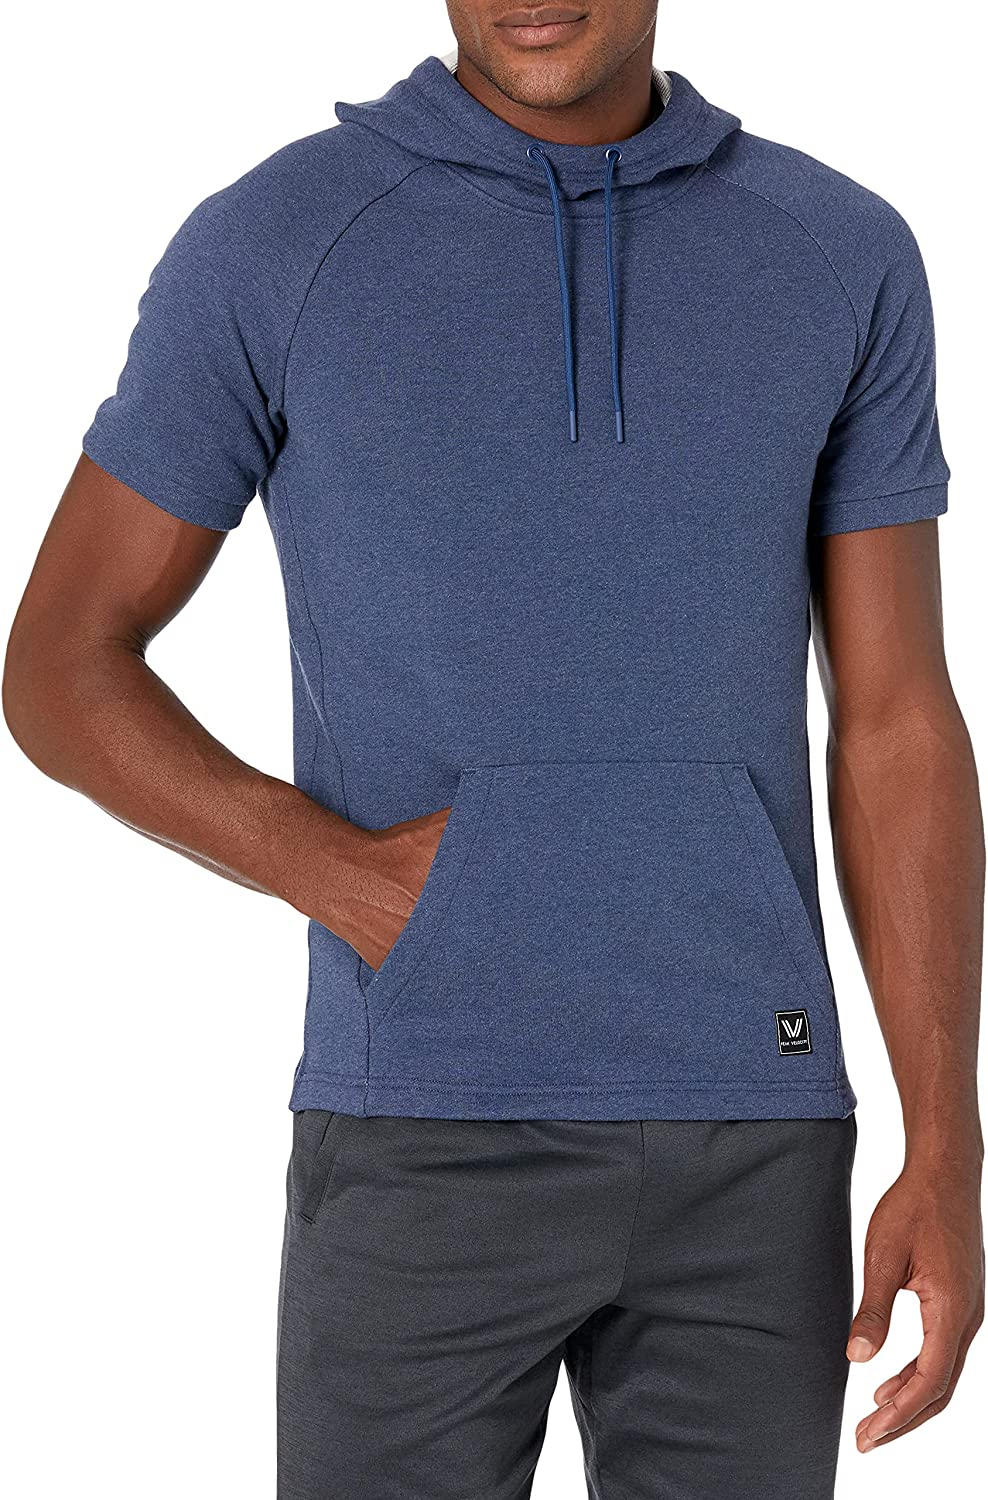 Amazon Brand - Peak Velocity Men's Short Courier shipping free Max 50% OFF French Sleeve Ath Terry